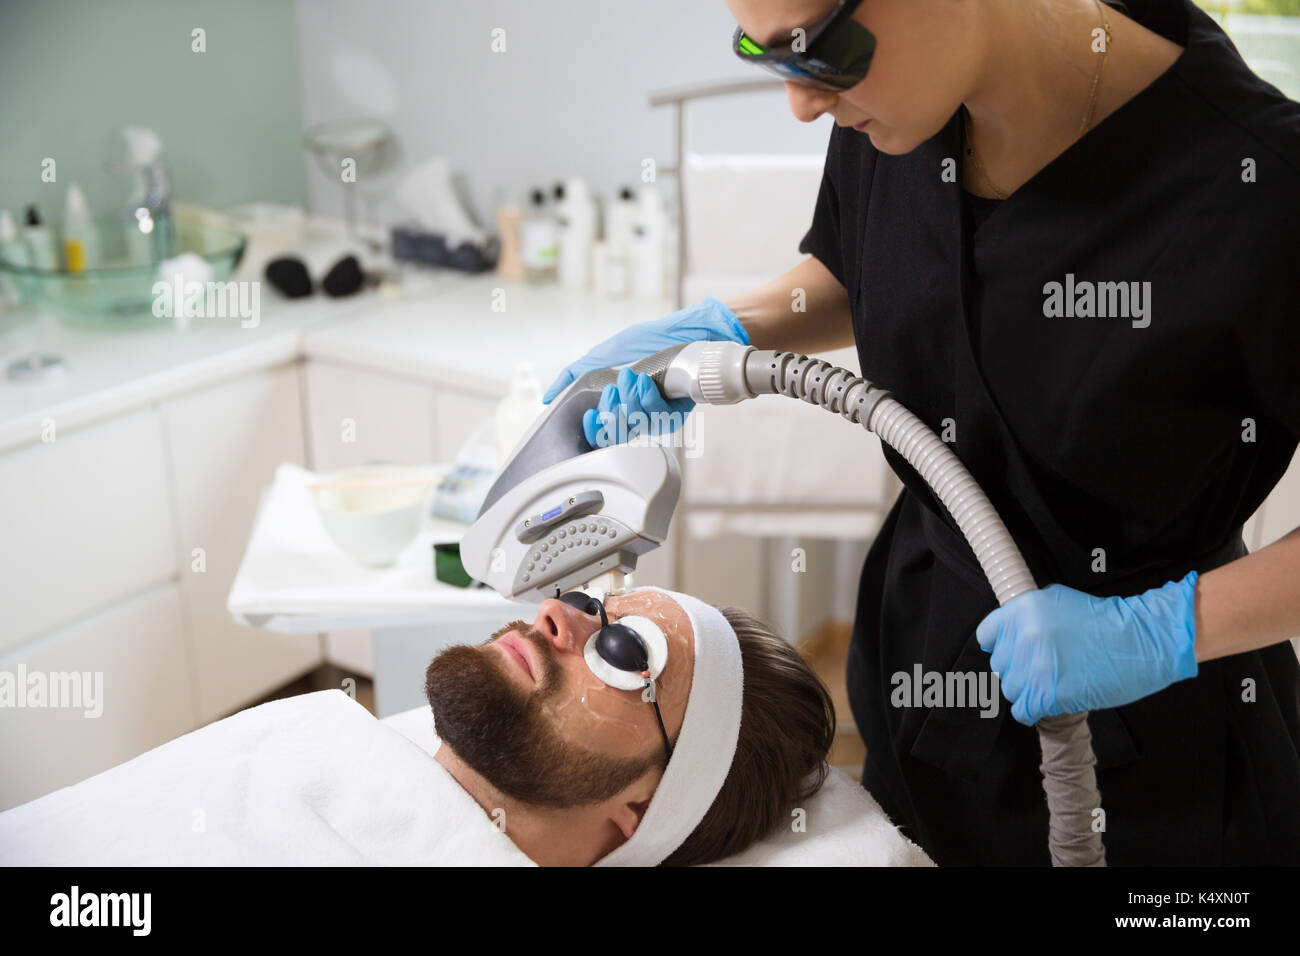 Man at beautician's during laser anti-aging therapy - Stock Image